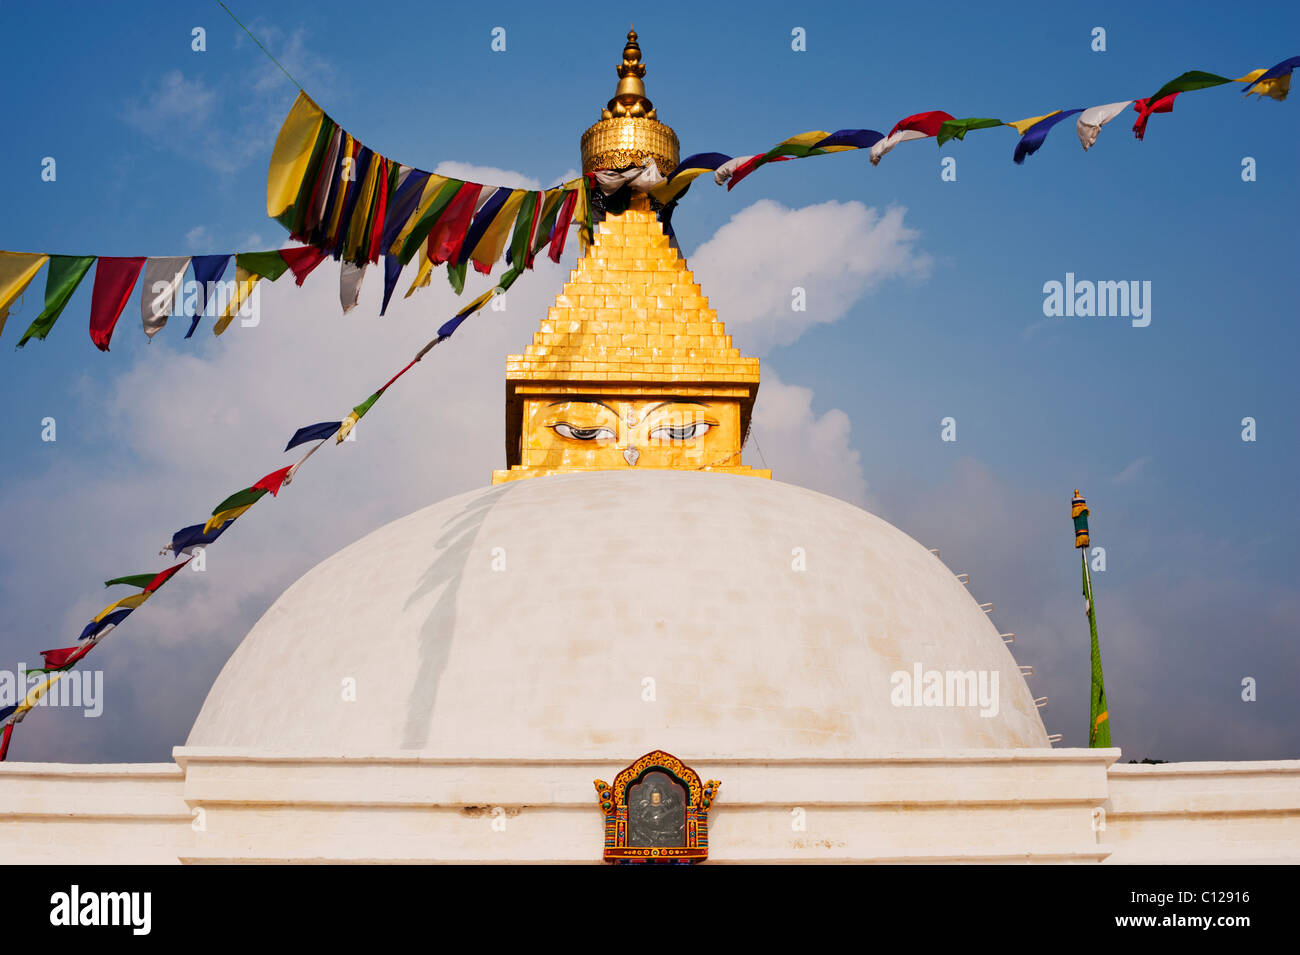 Traditional Nepali style stupa with prayer flags in a Bhutanese convent in Punakha, Bhutan - Stock Image